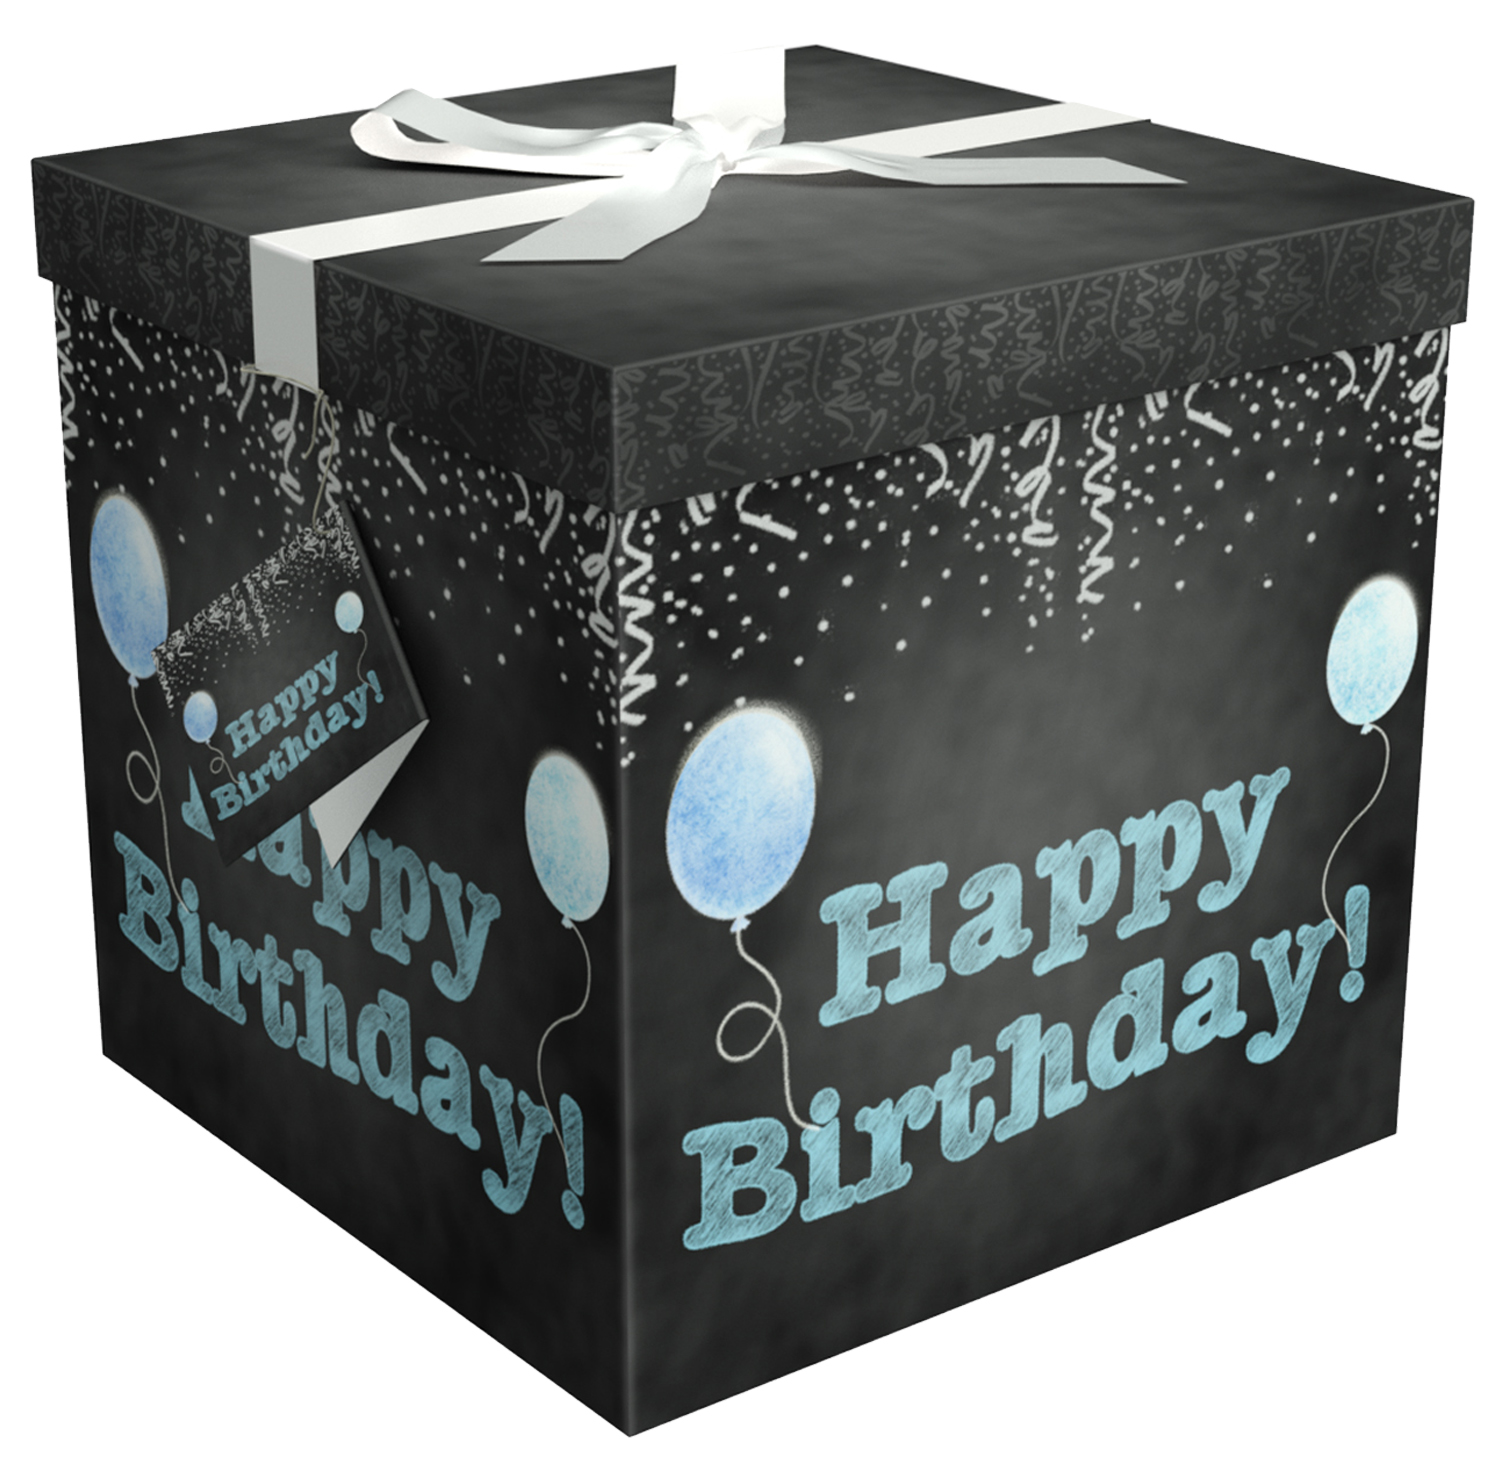 Gift Box 12x12x12 Amrita Birthday Collection- Easy to Assemble & Reusable - No Glue Required - Ribbon, Tissue Paper, and Gift Tag Included - EZ Gift Box by Endless Art US